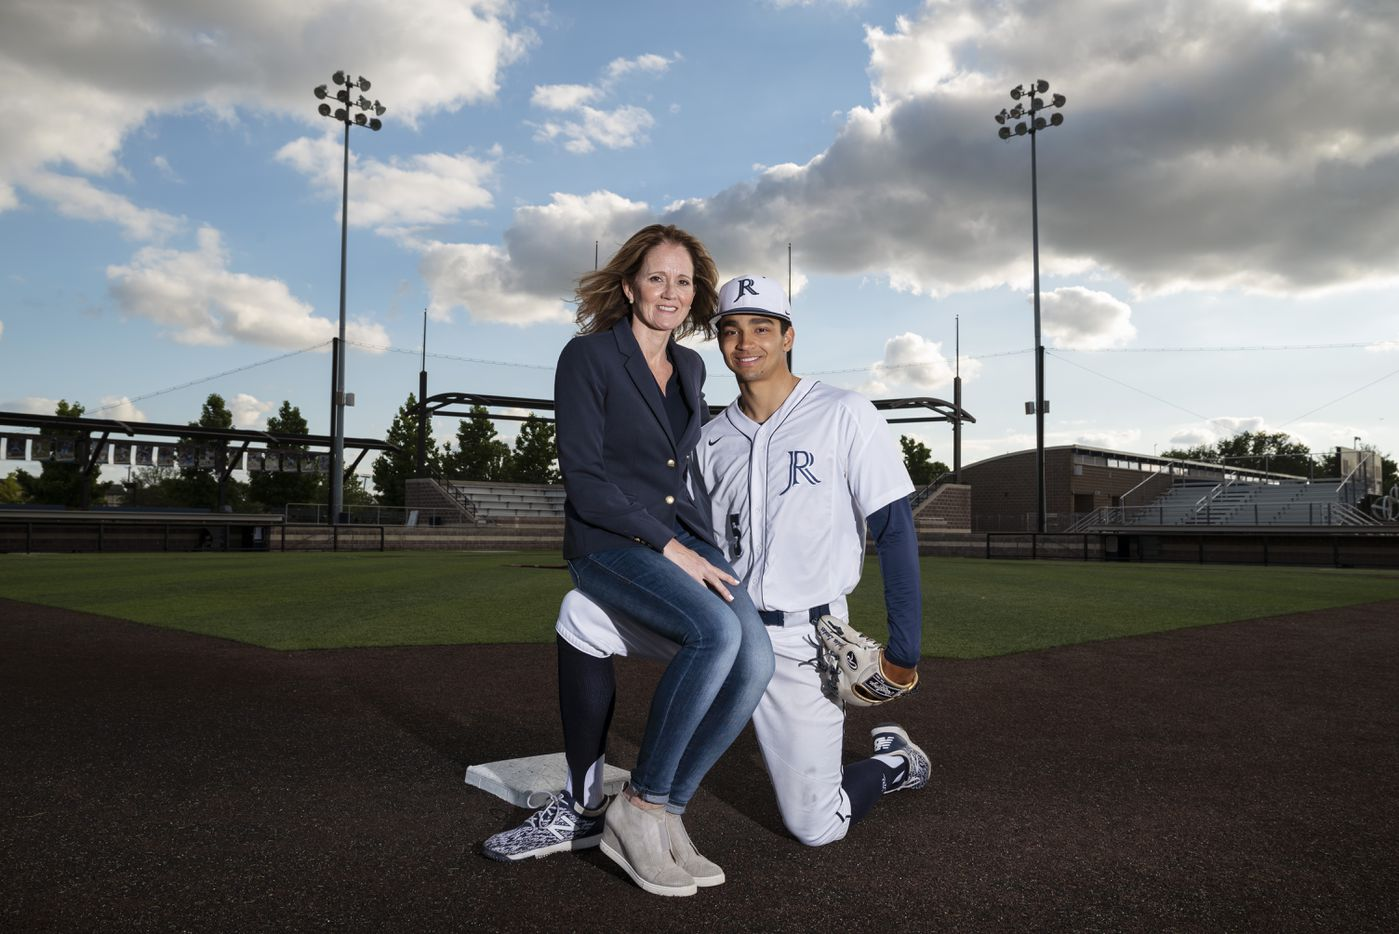 Jesuit senior shortstop Jordan Lawlar, 18, and his mother Hope Lawlar on the baseball diamond on the campus of Jesuit College Preparatory School of Dallas, on Tuesday, May 04, 2021.